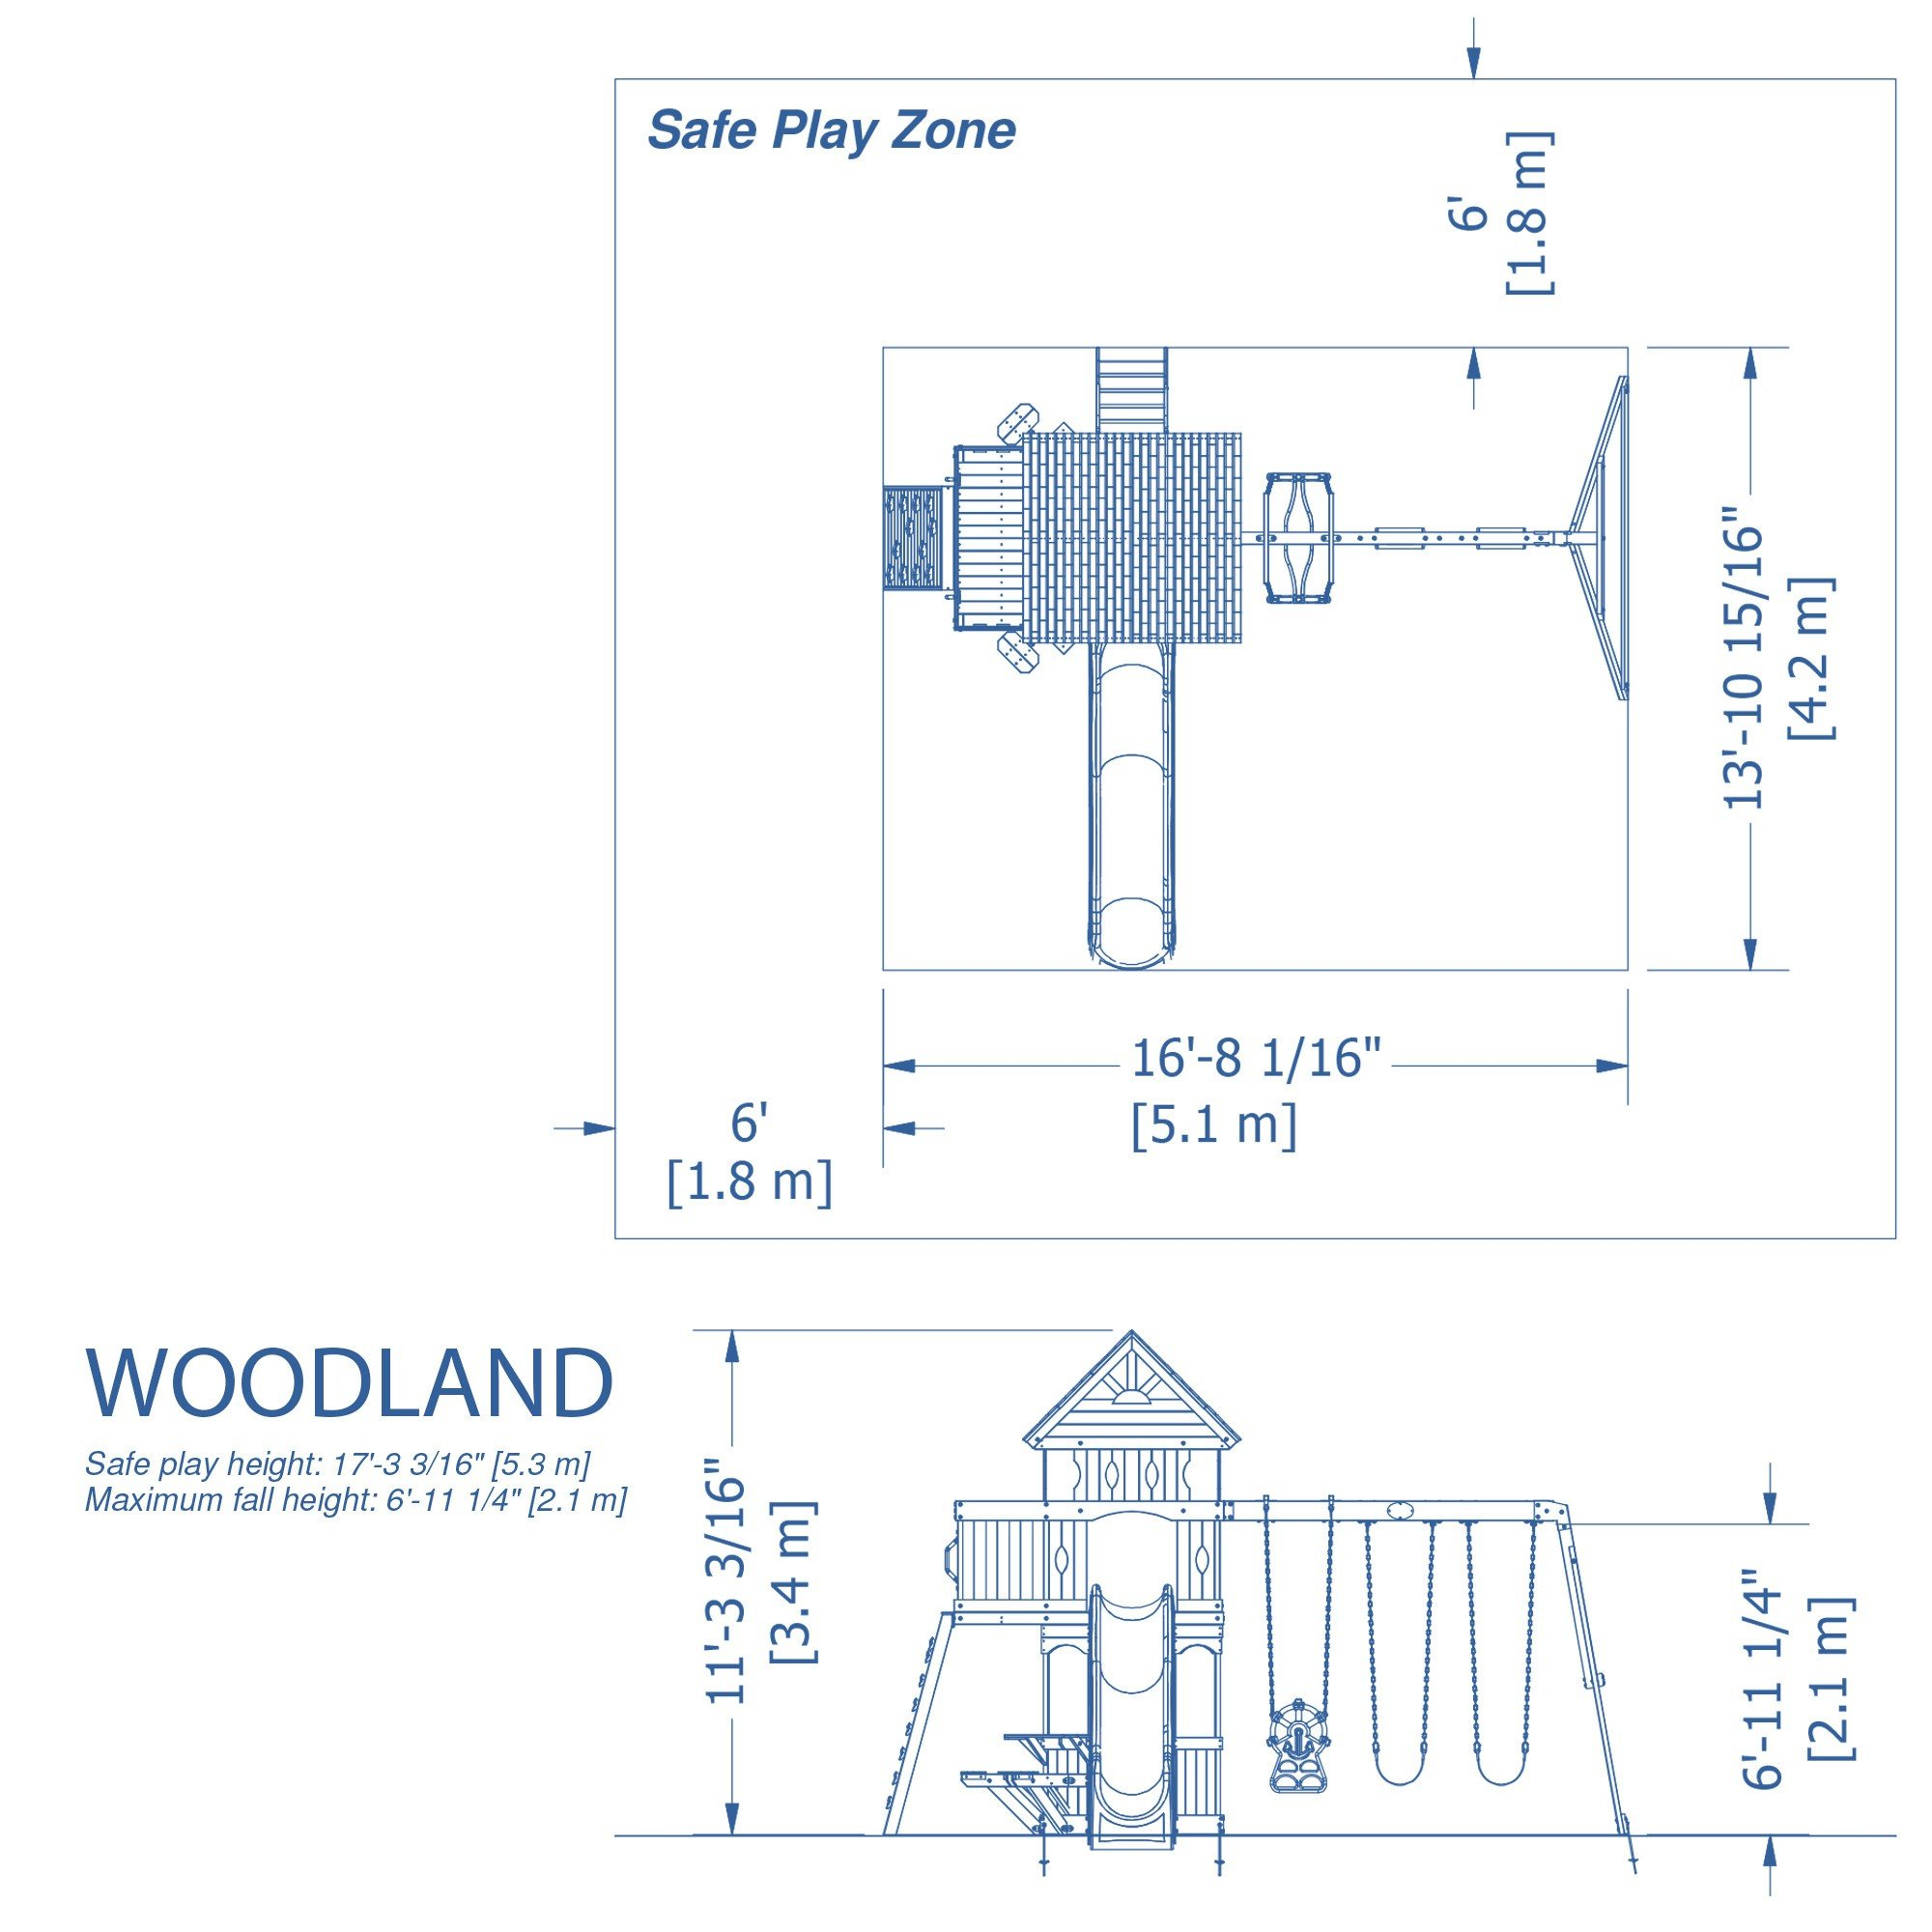 Drawn rain swing Playsets Discovery Woodland $499 Wooden